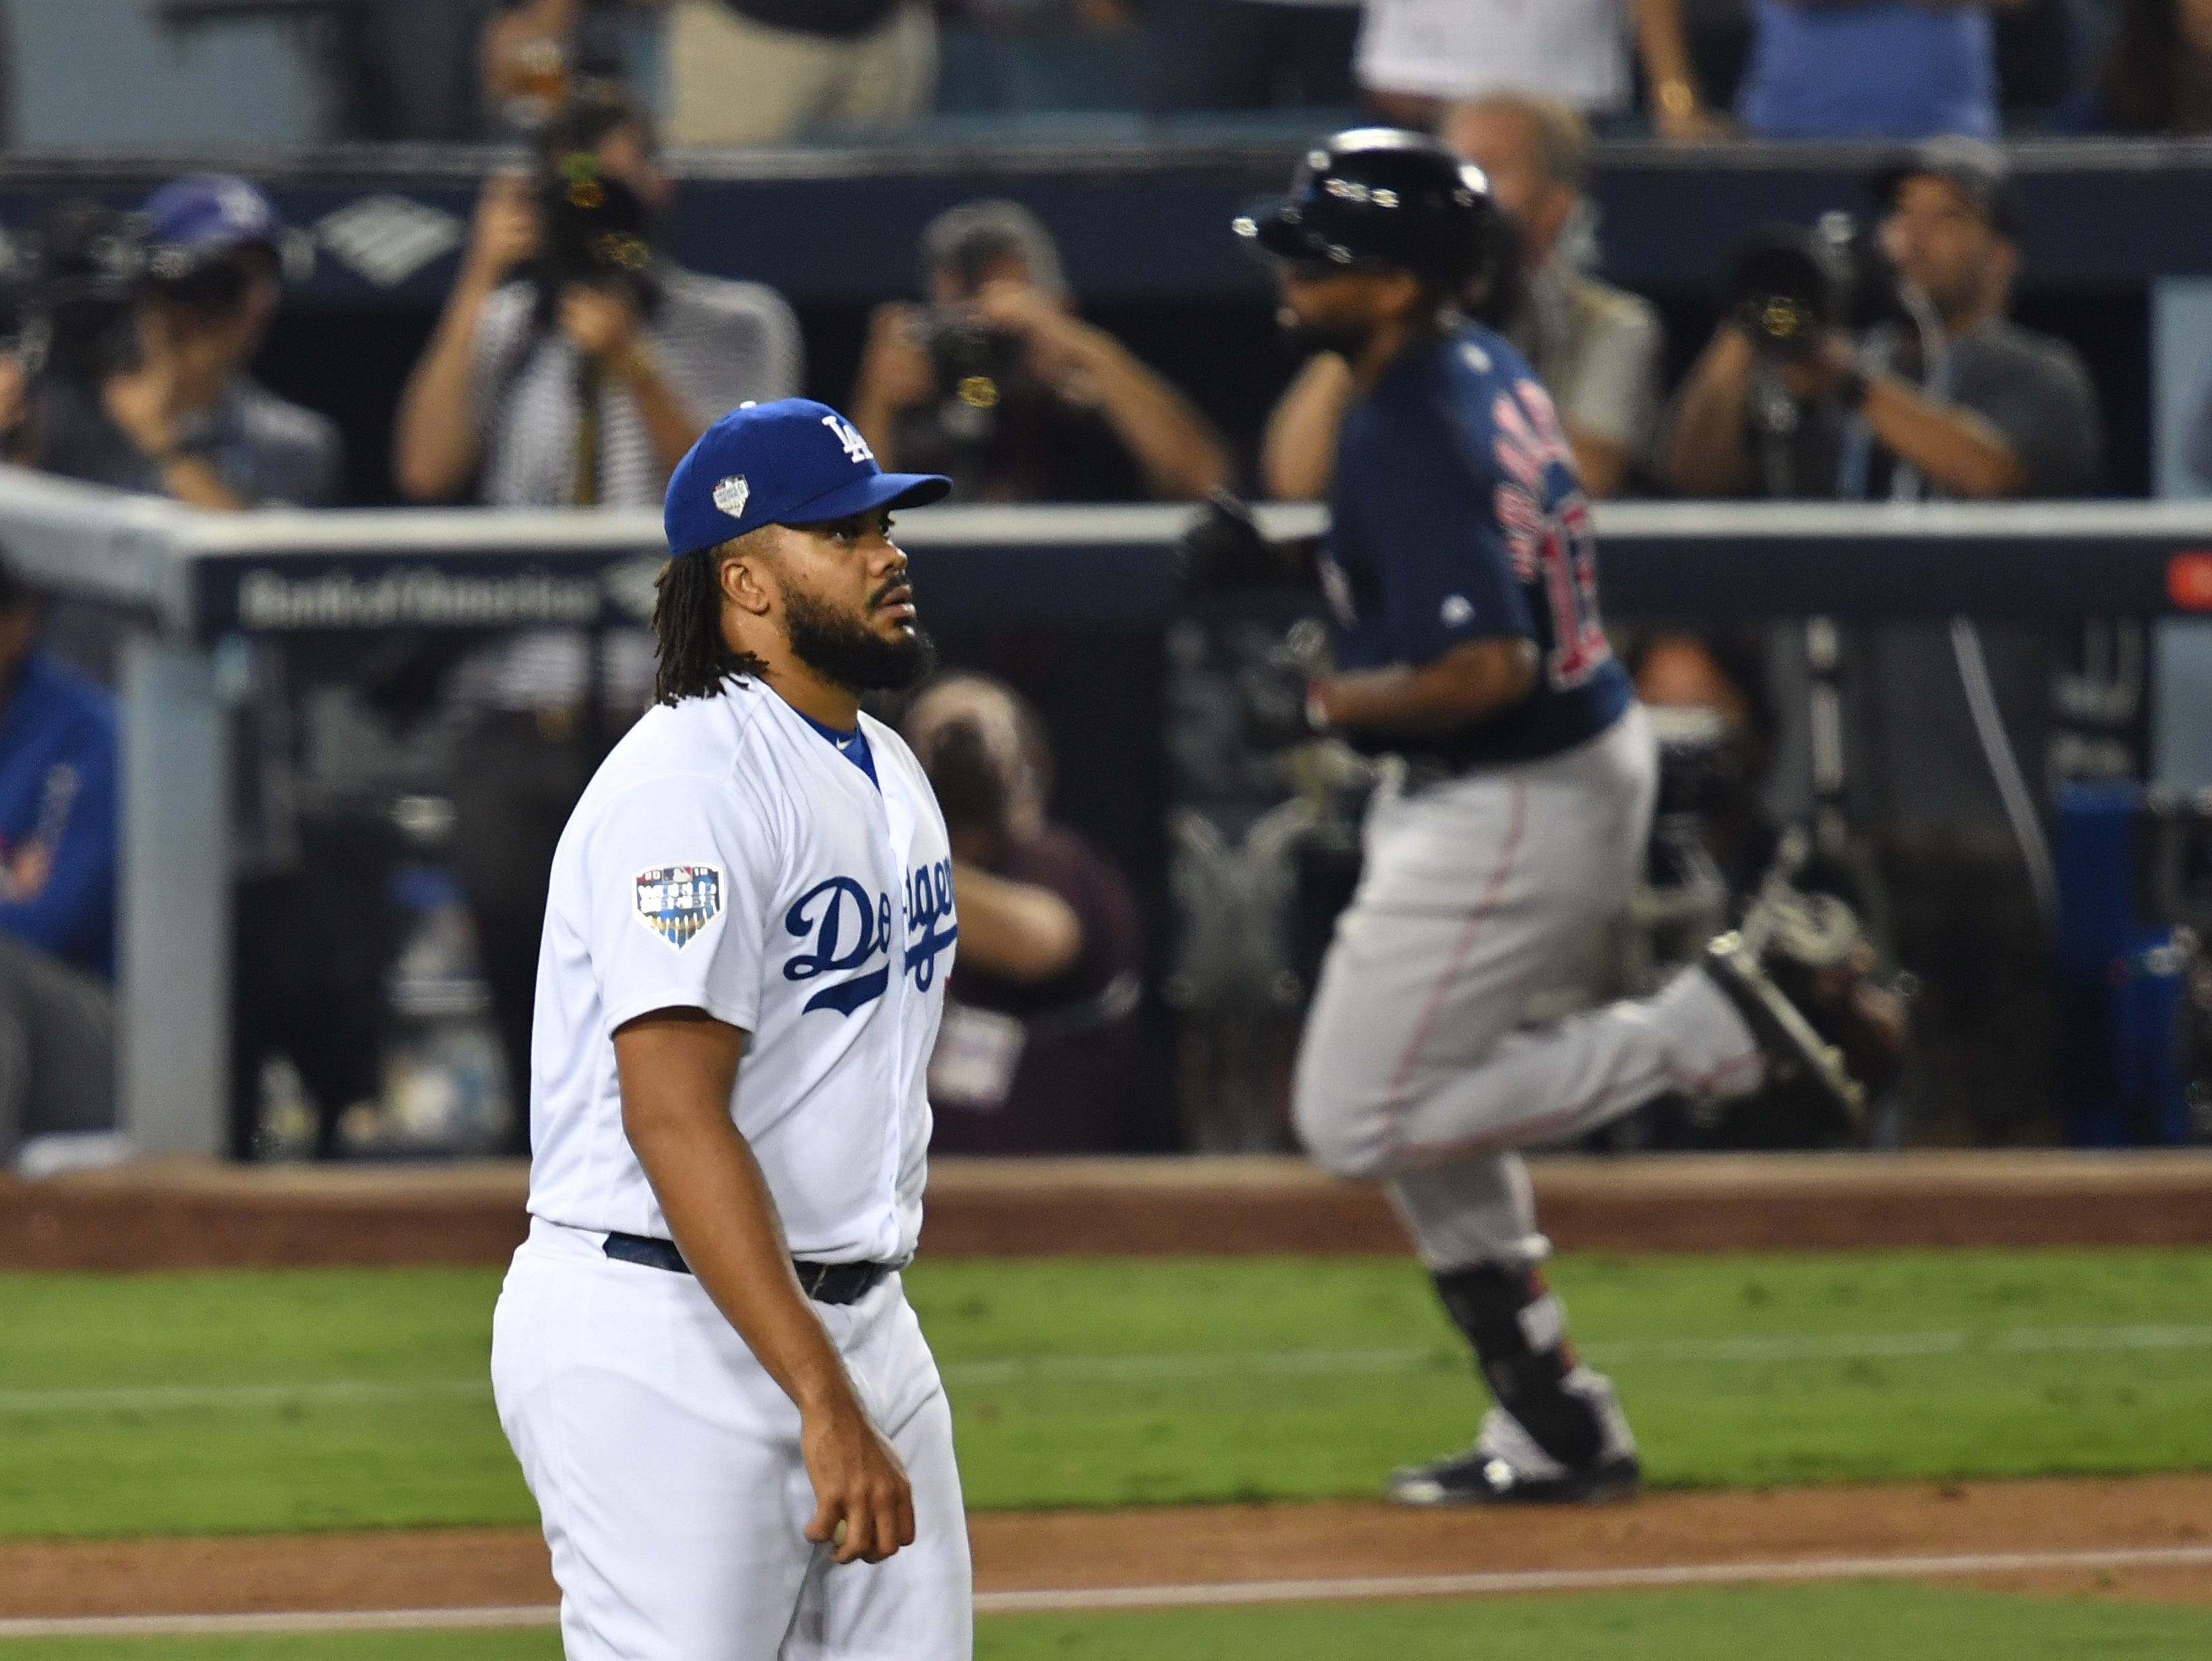 Game 3 at Dodger Stadium: Dodgers pitcher Kenley Jansen reacts after giving up a solo home run to Jackie Bradley Jr. in the eighth.